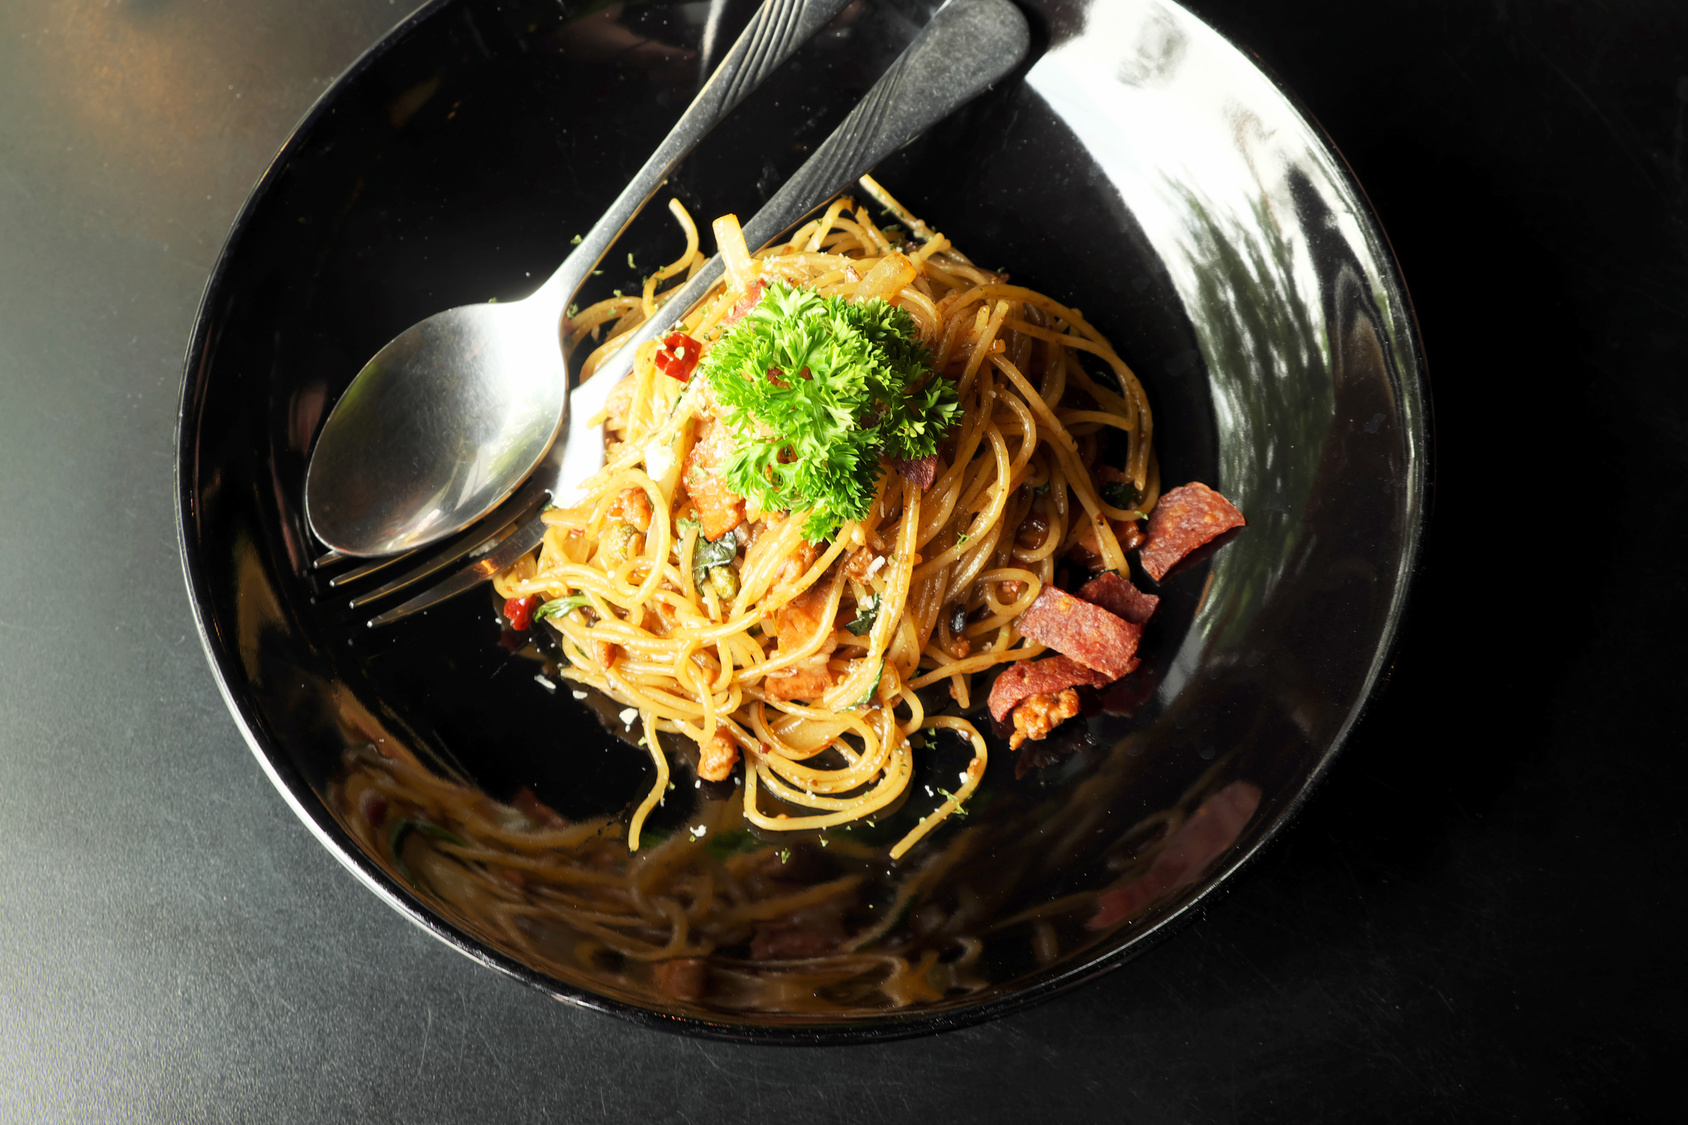 Spicy Spaghetti with Fried Ham in Black Plate